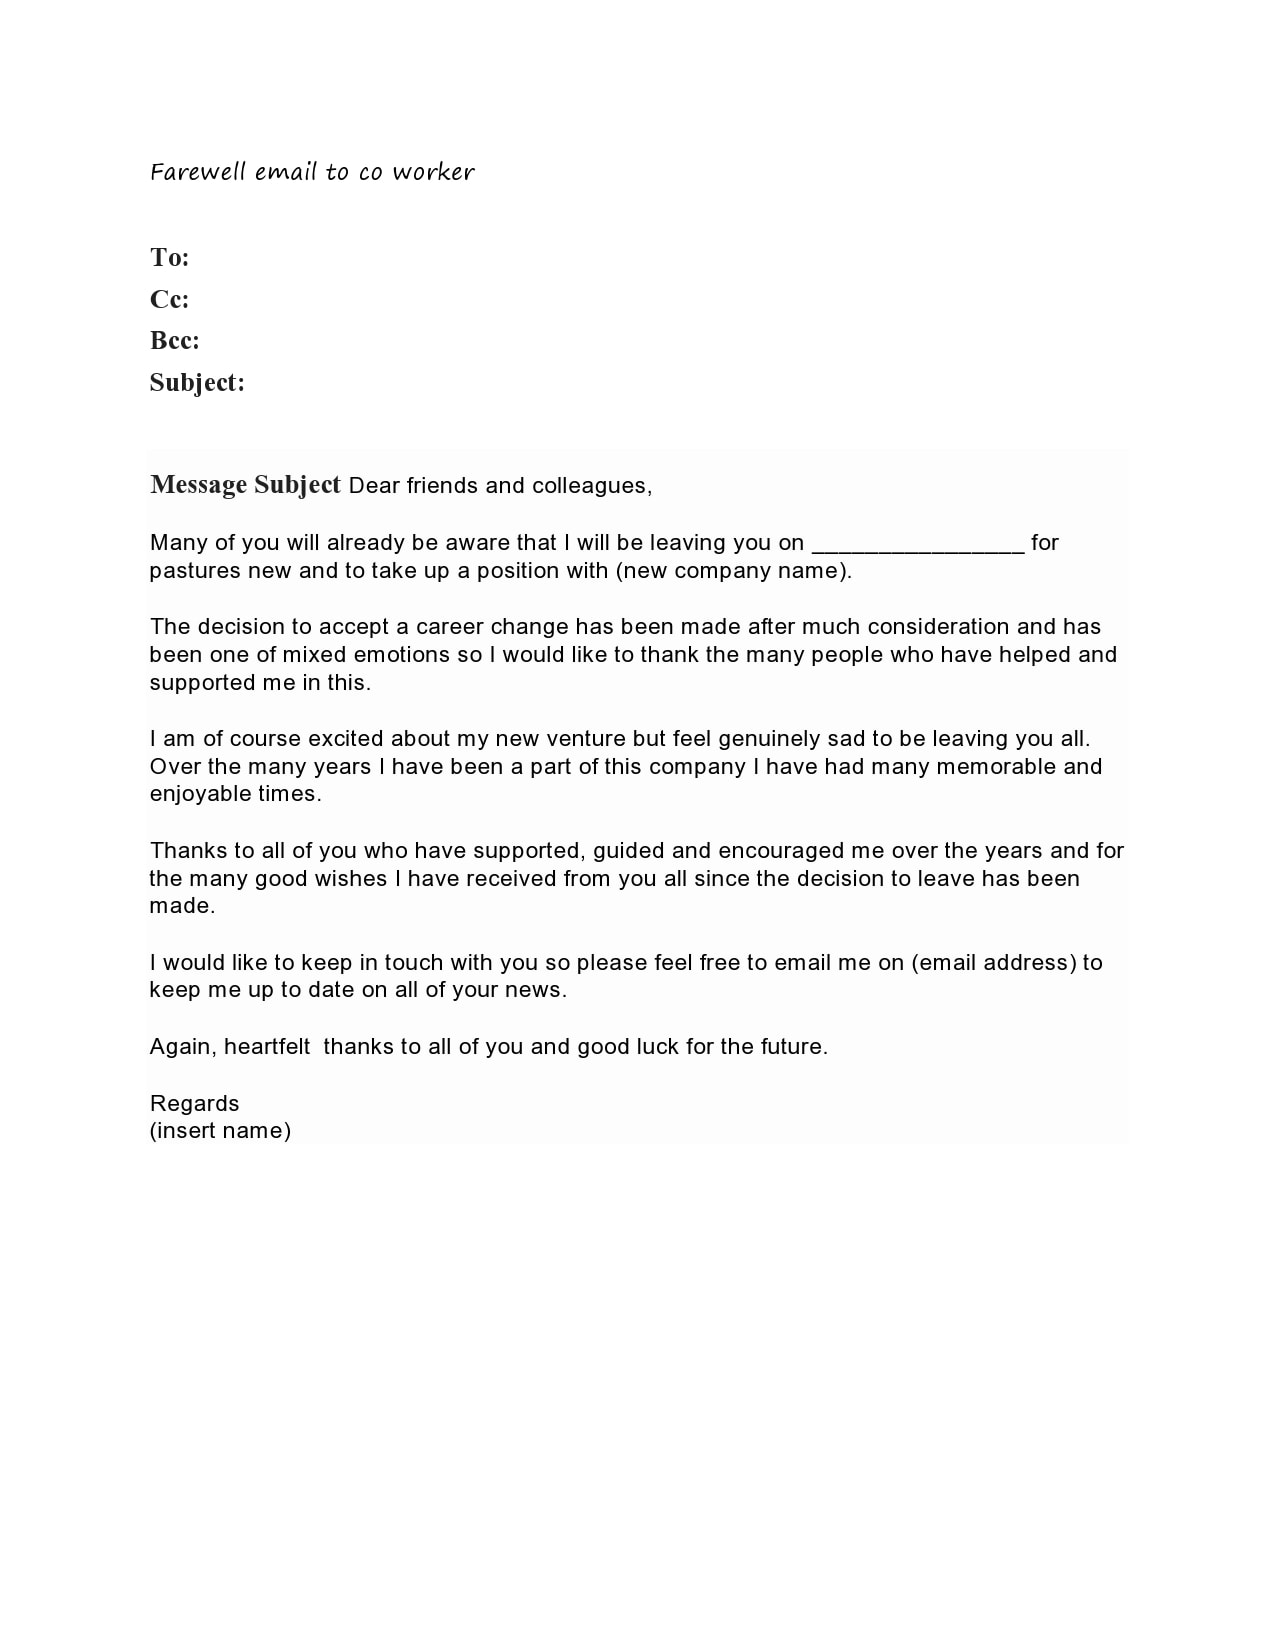 Farewell Letter To Colleagues Leaving from templatearchive.com